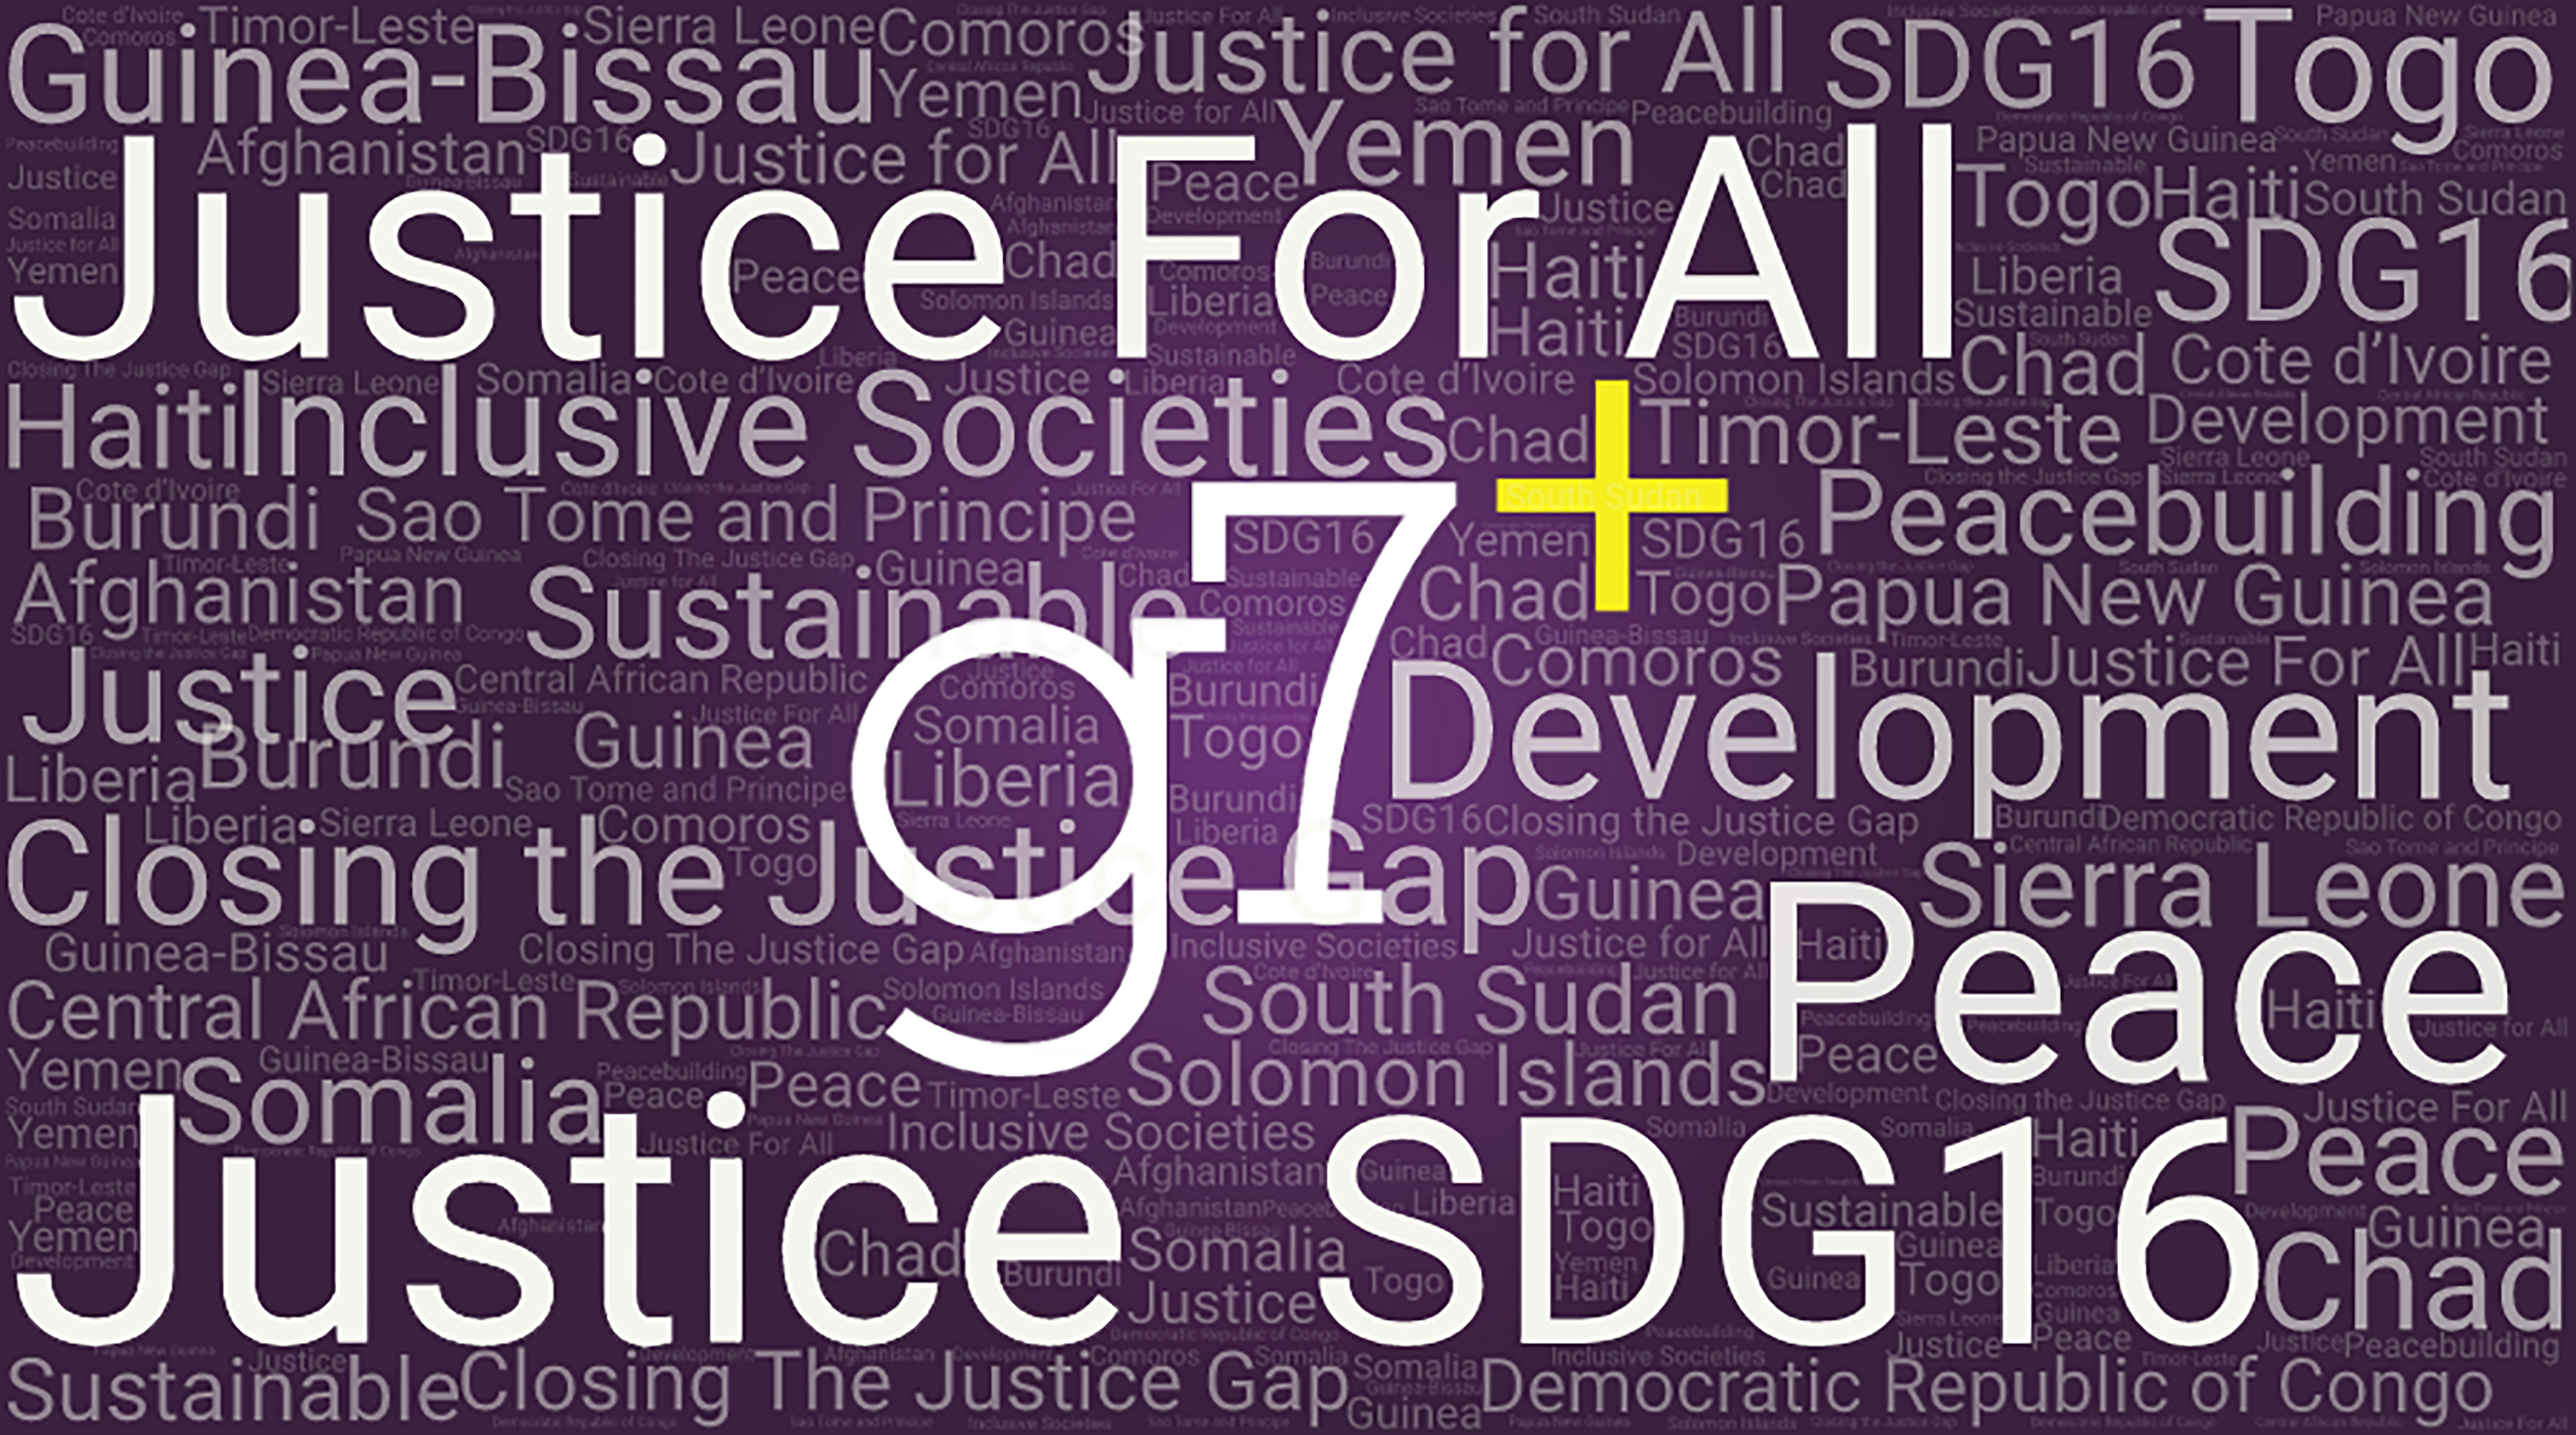 Access to Justice for All in Conflict-Affected Countries: Declaration and Joint Action Plan